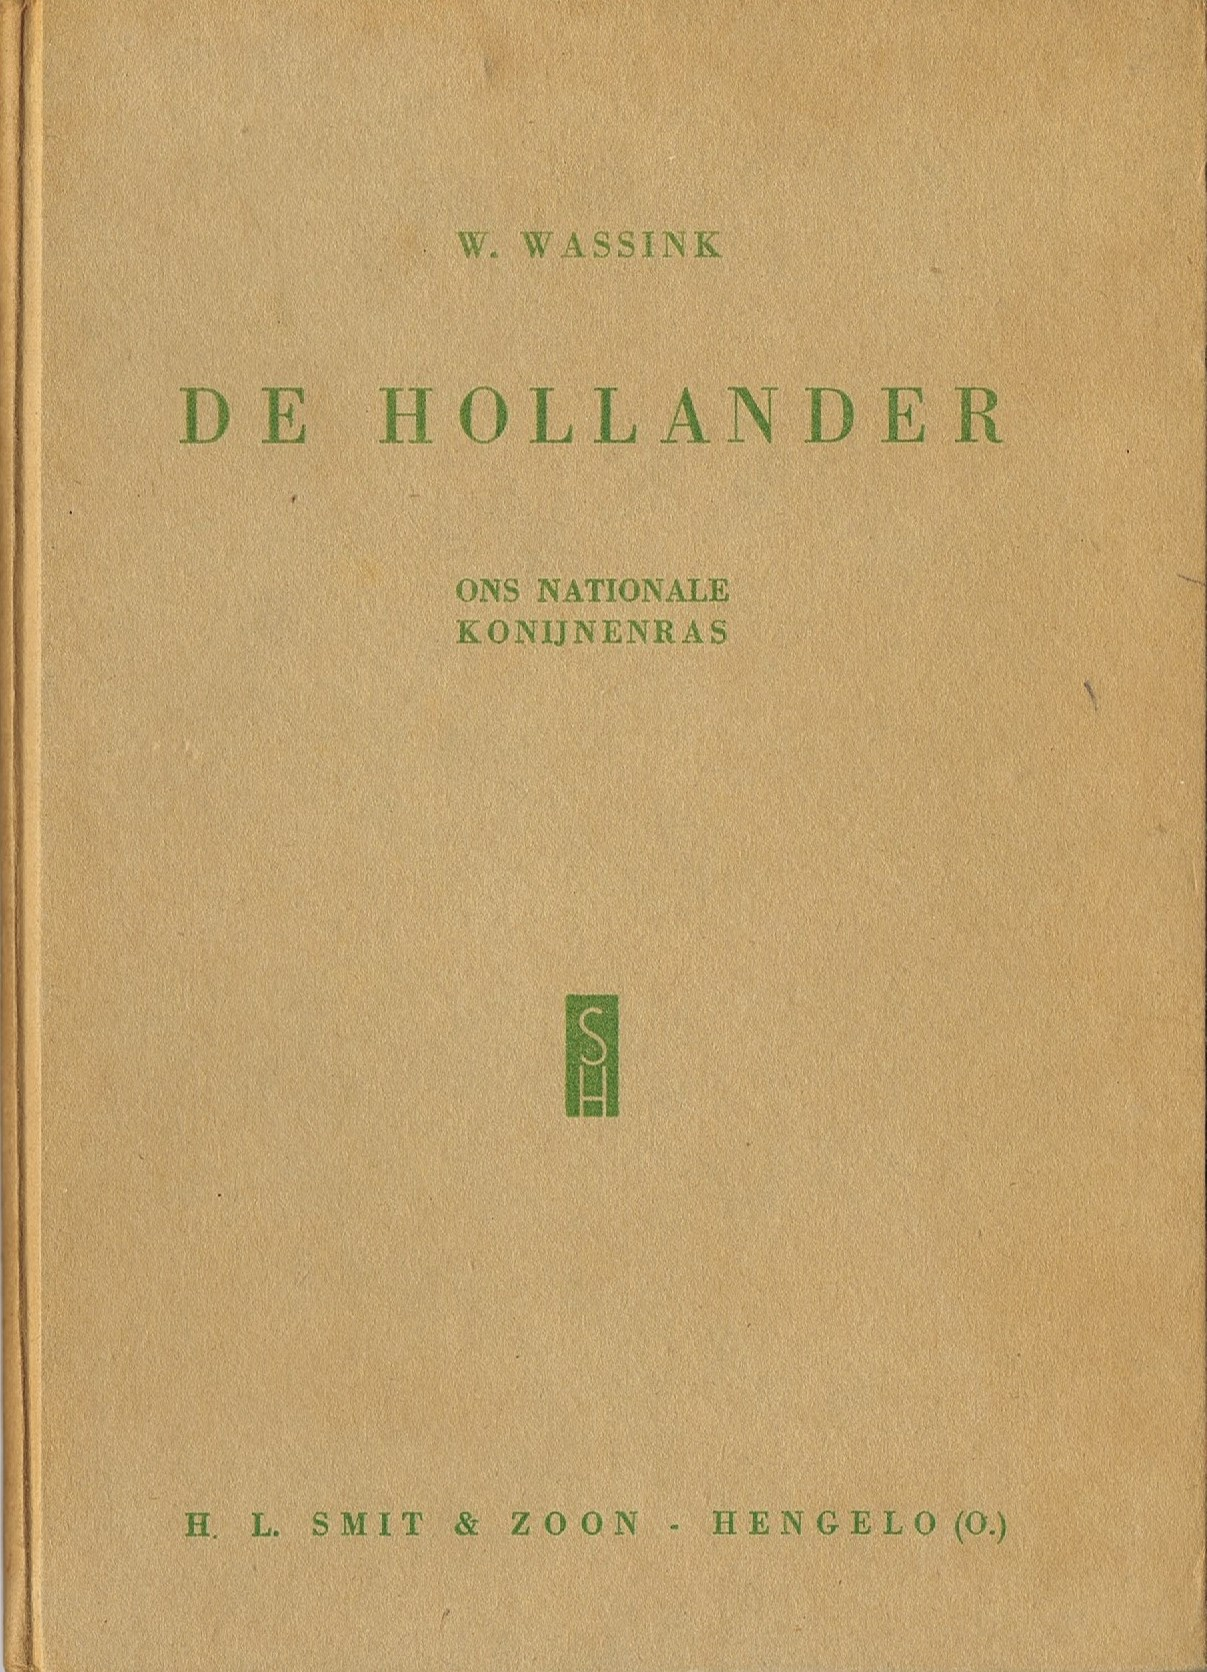 De Hollander Wassink